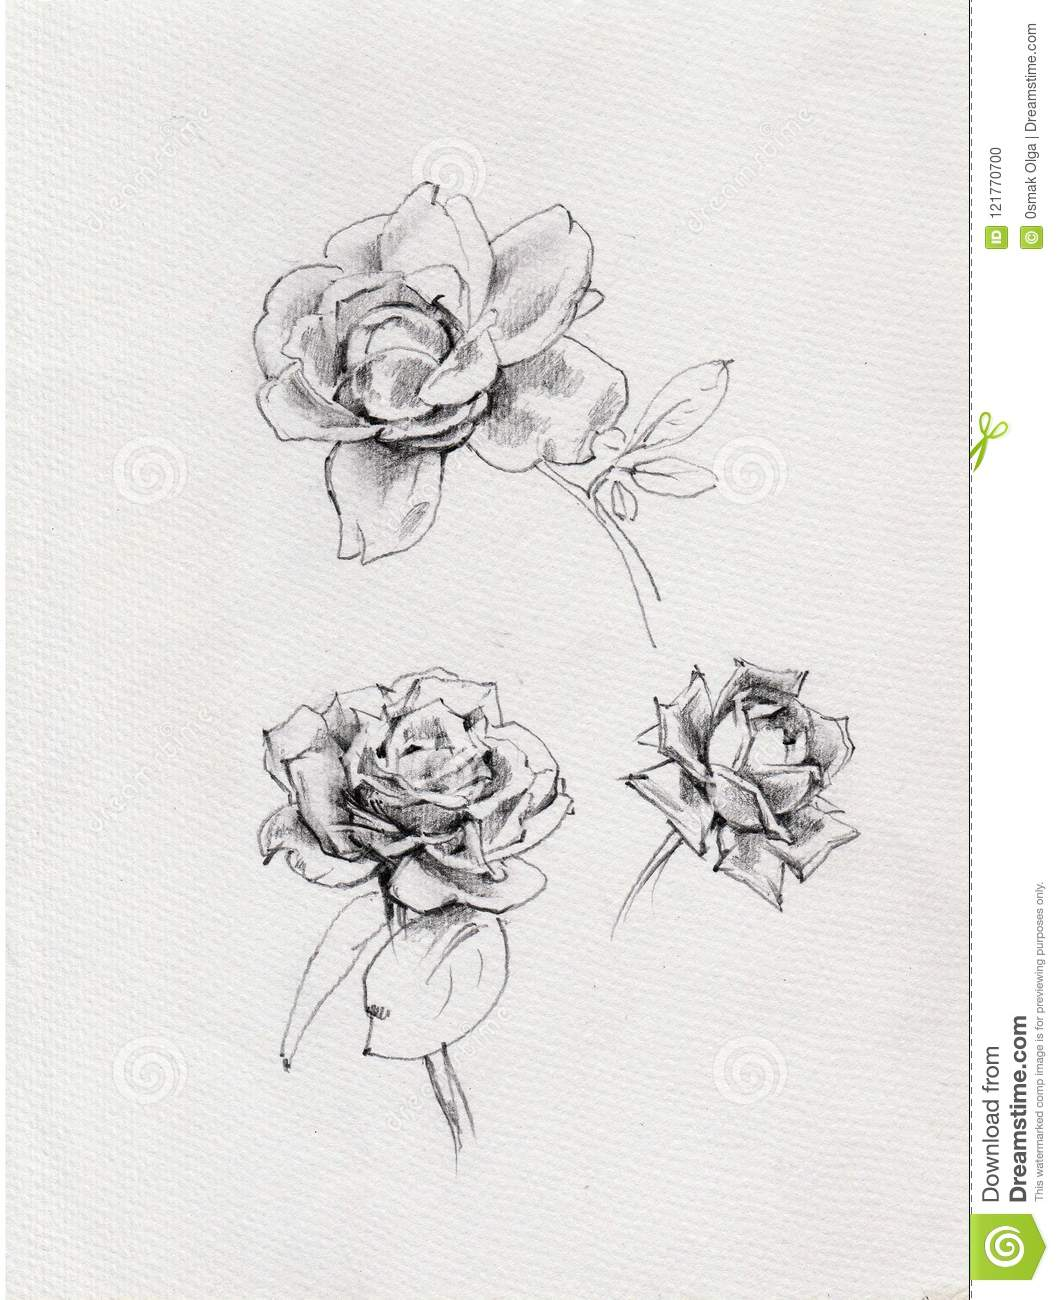 Pencil drawing background floral pattern handmade beautiful